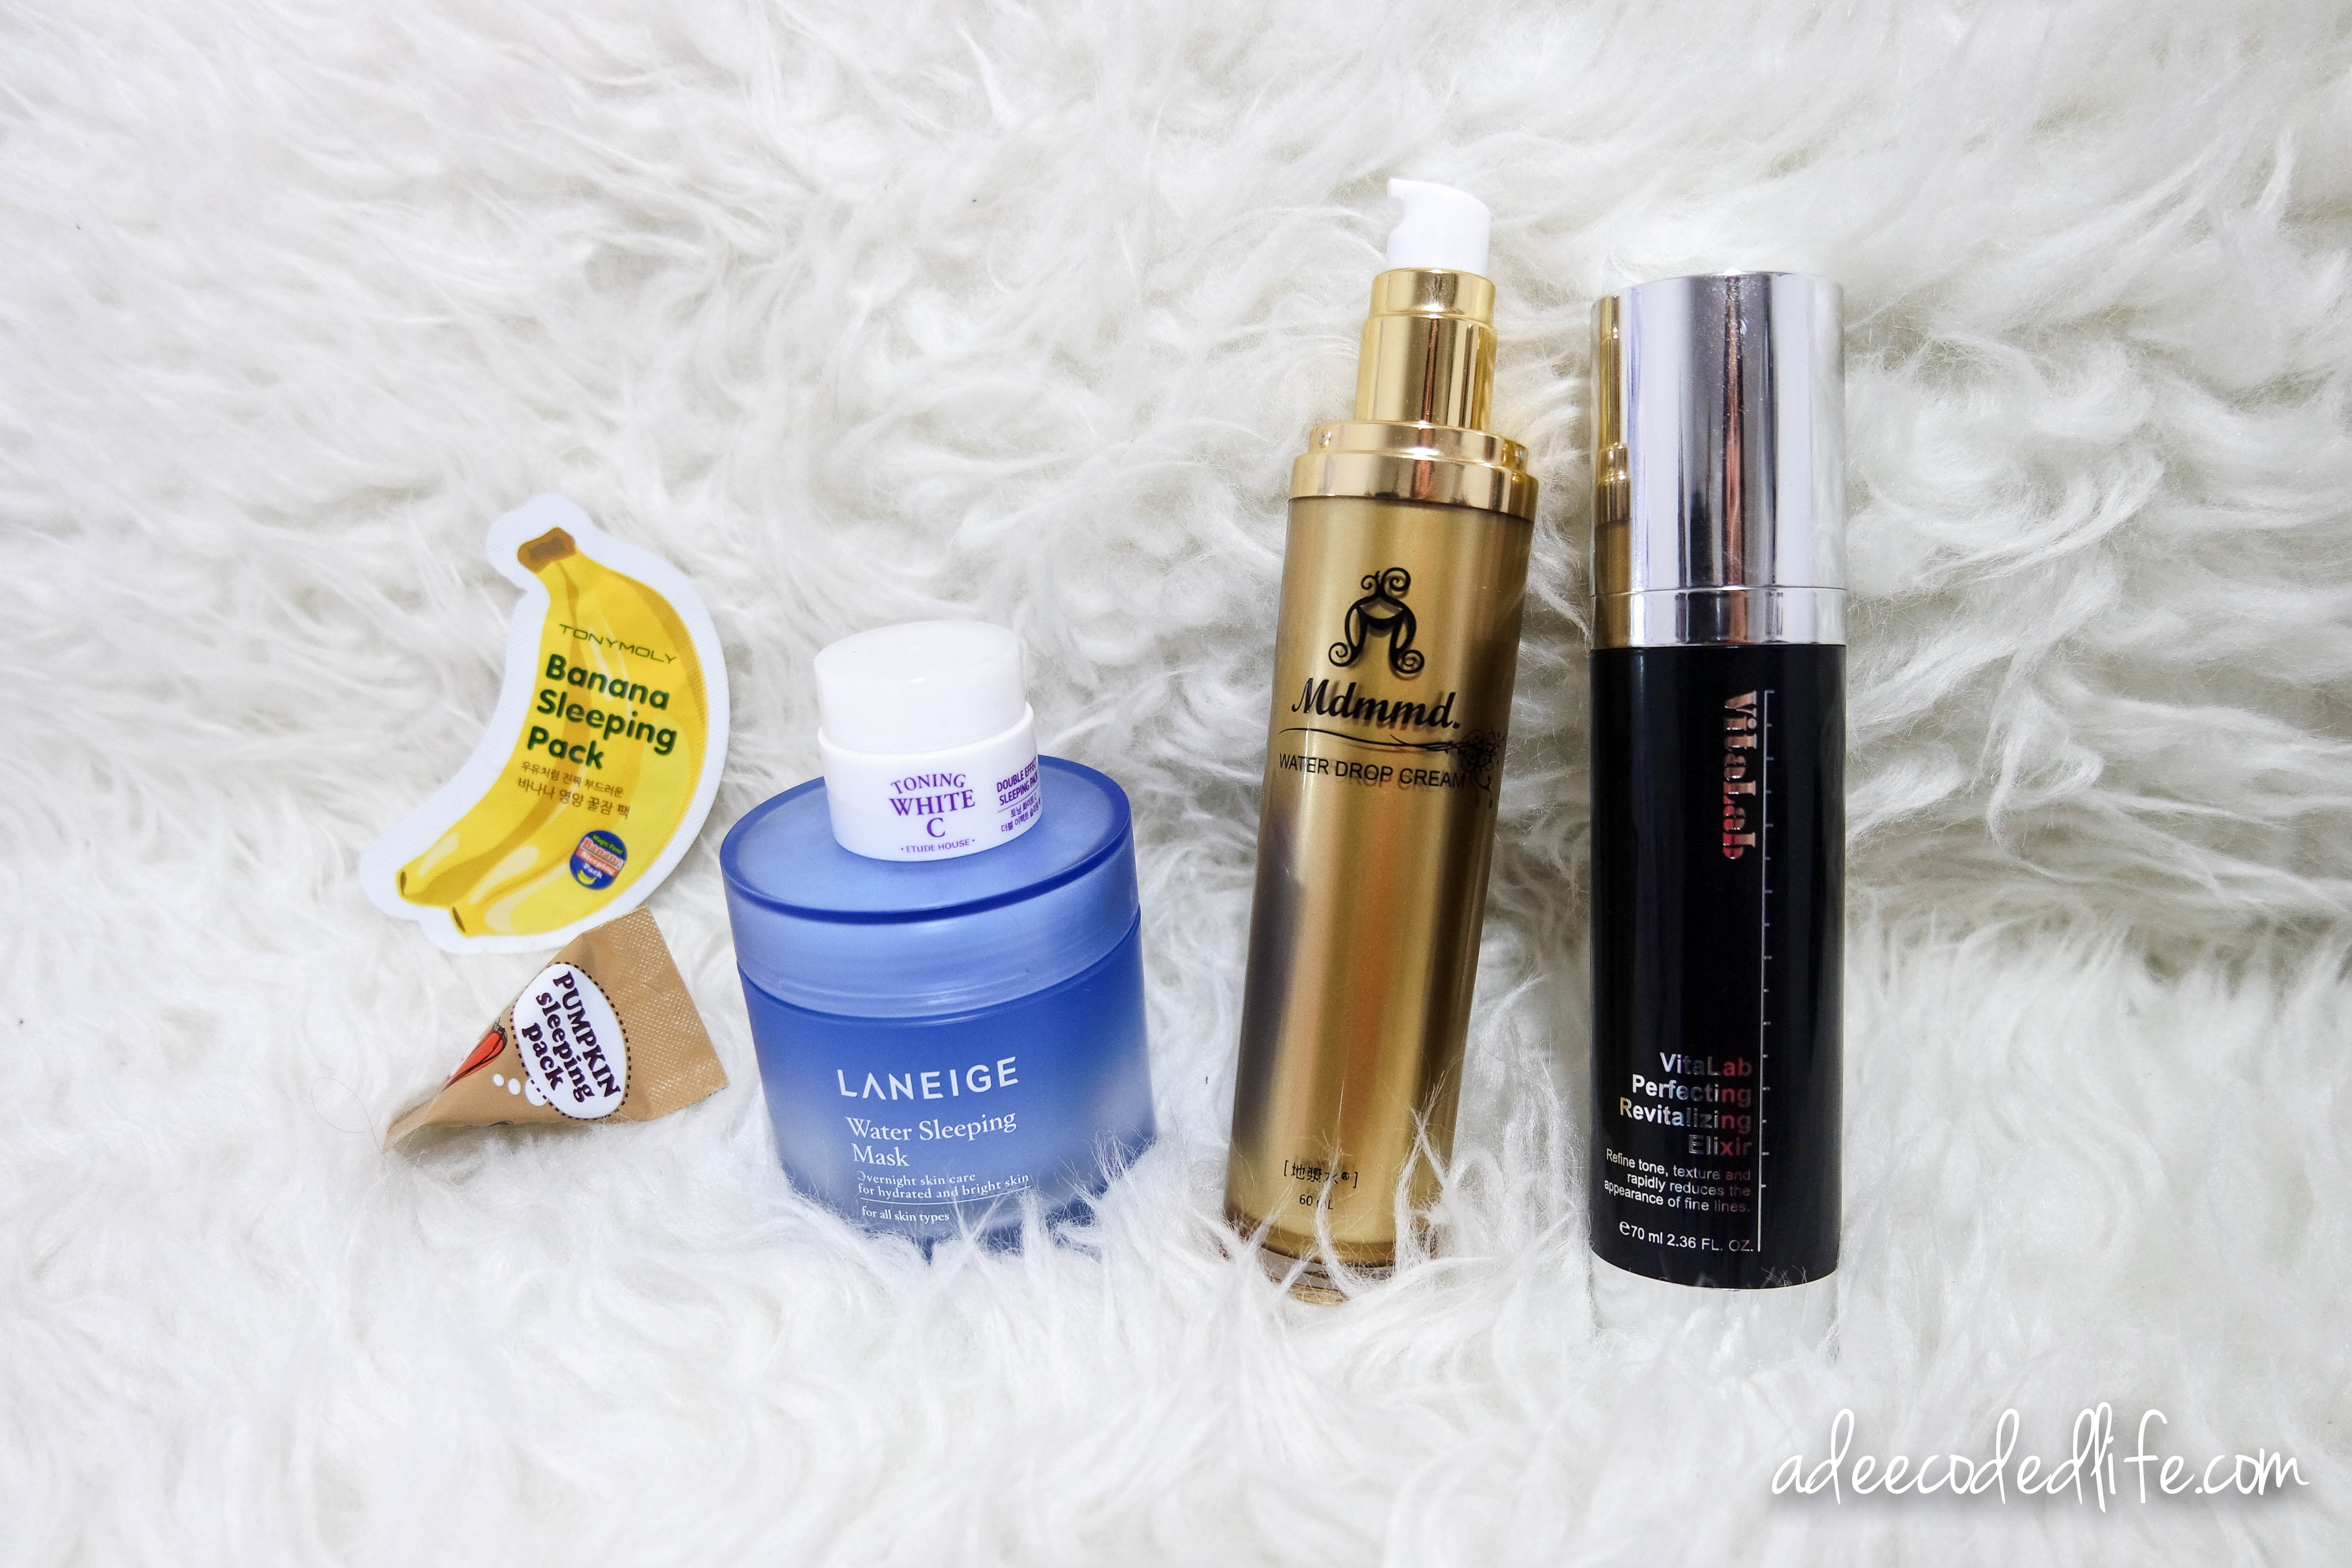 My Asian Beauty Skincare Routine - A Deecoded Life